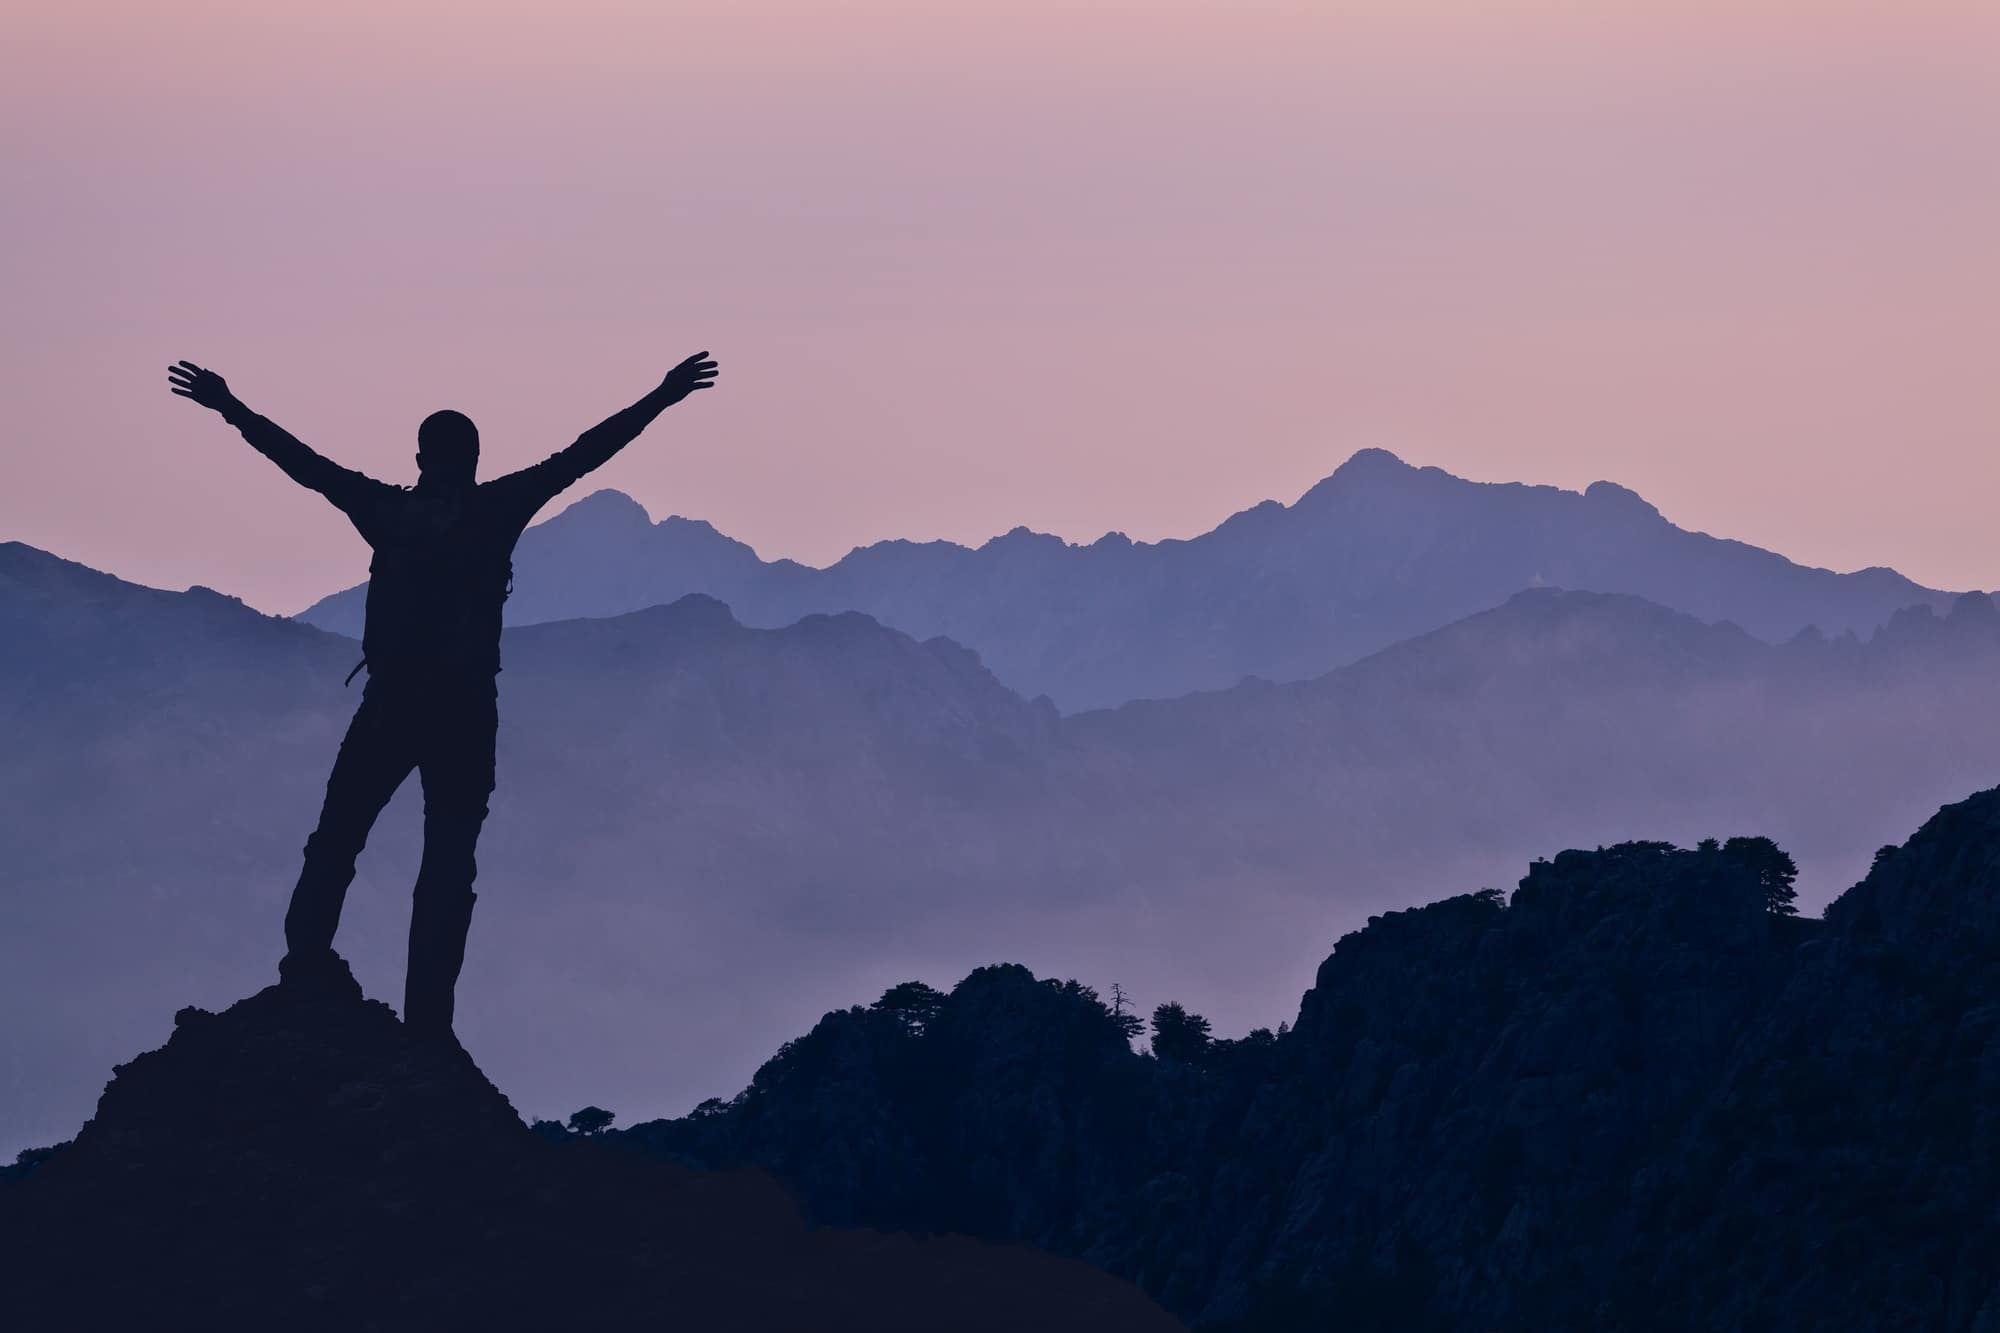 person with outstretched arms on mountain